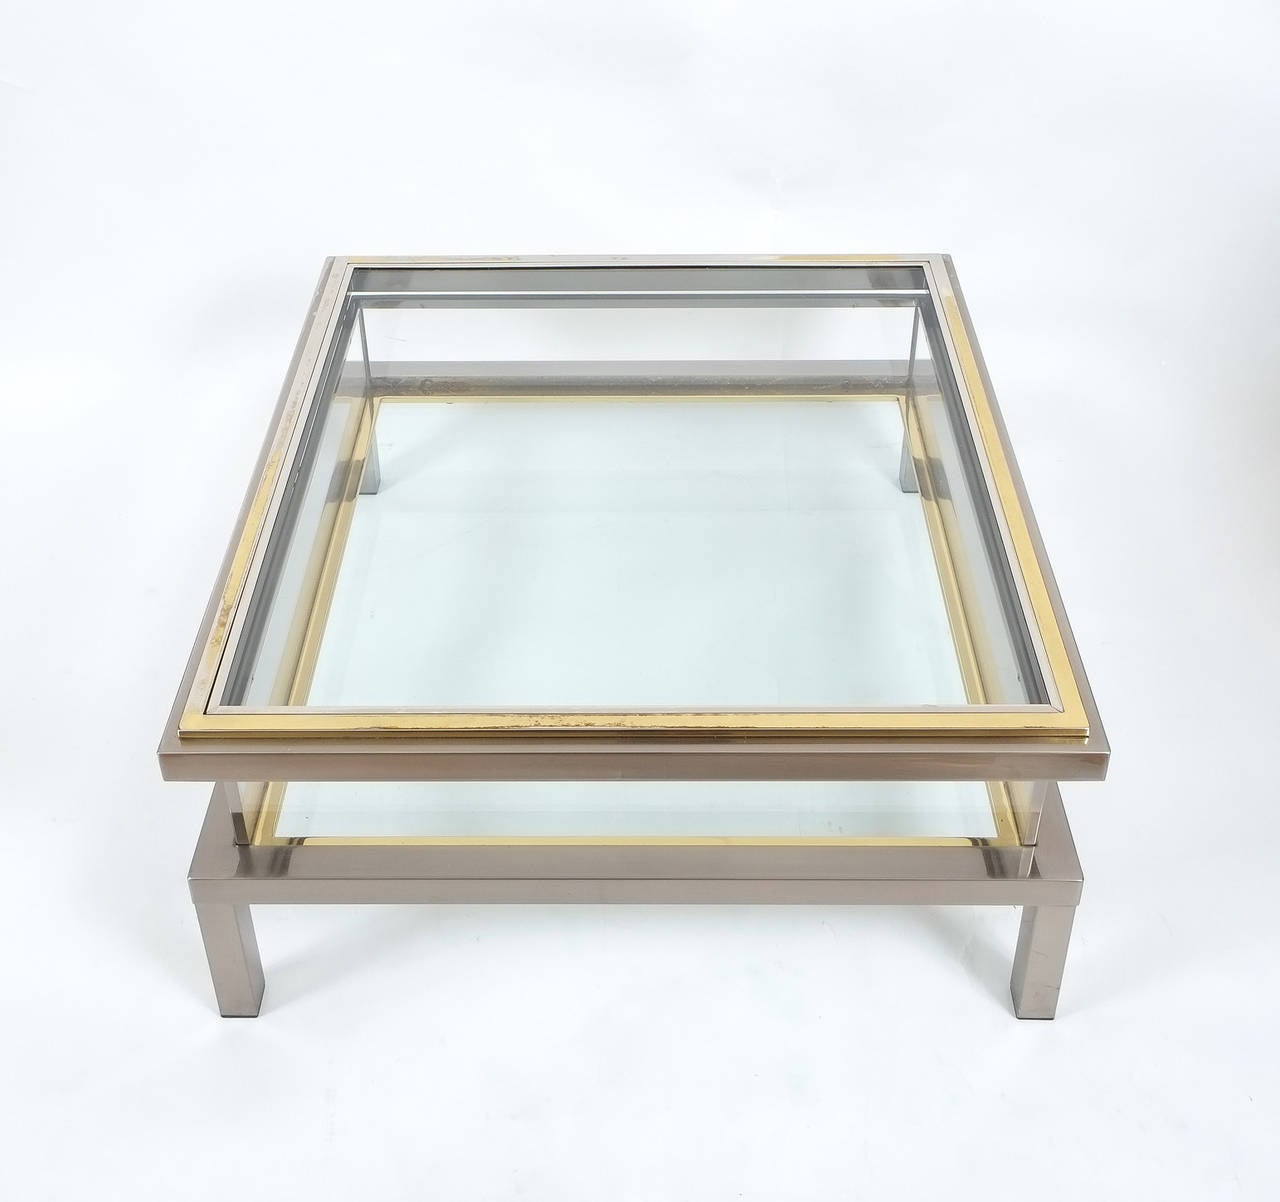 Elegant Brass And Glass Coffee Table: Elegant Romeo Rega Brass And Chrome Coffee Table With